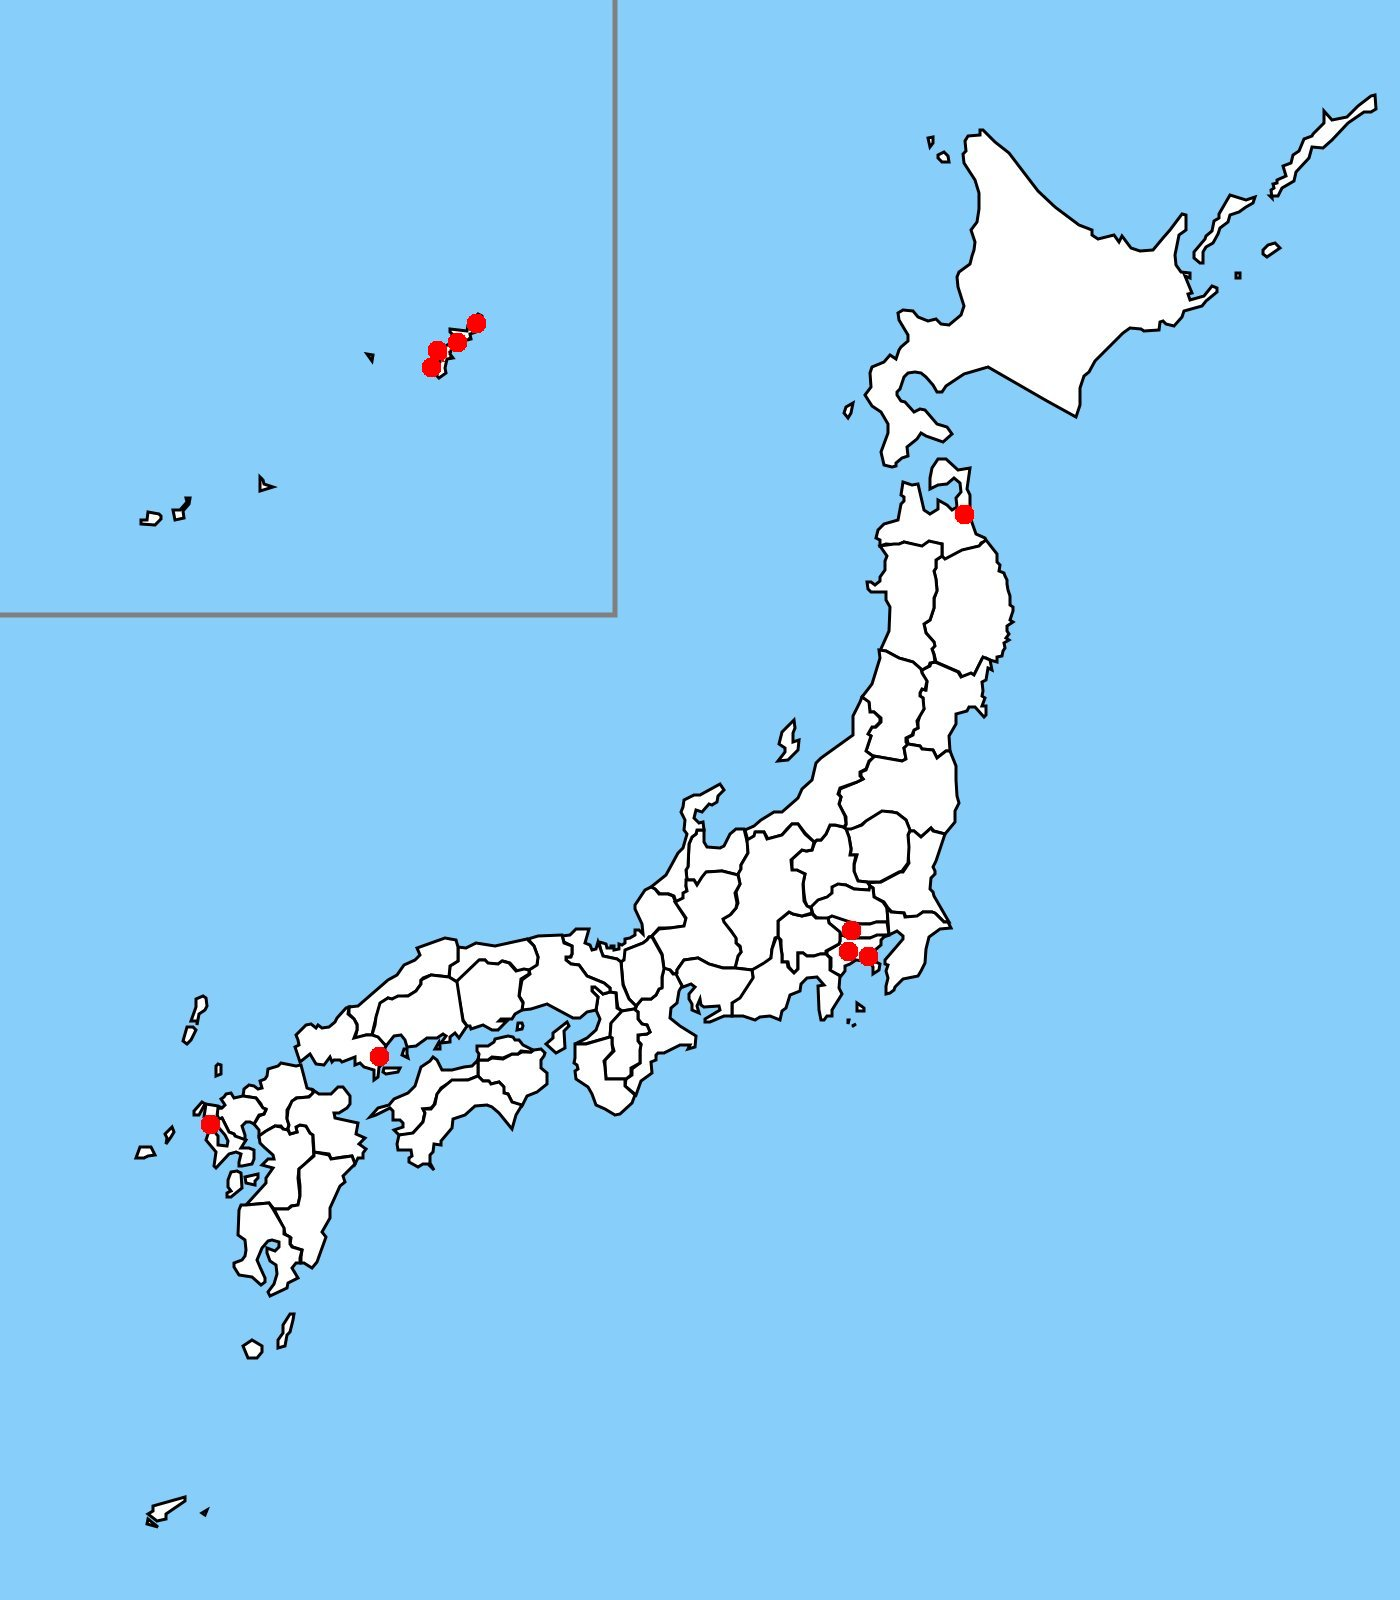 File:US Military bases in Japan.jpg - Wikipedia, the free encyclopedia